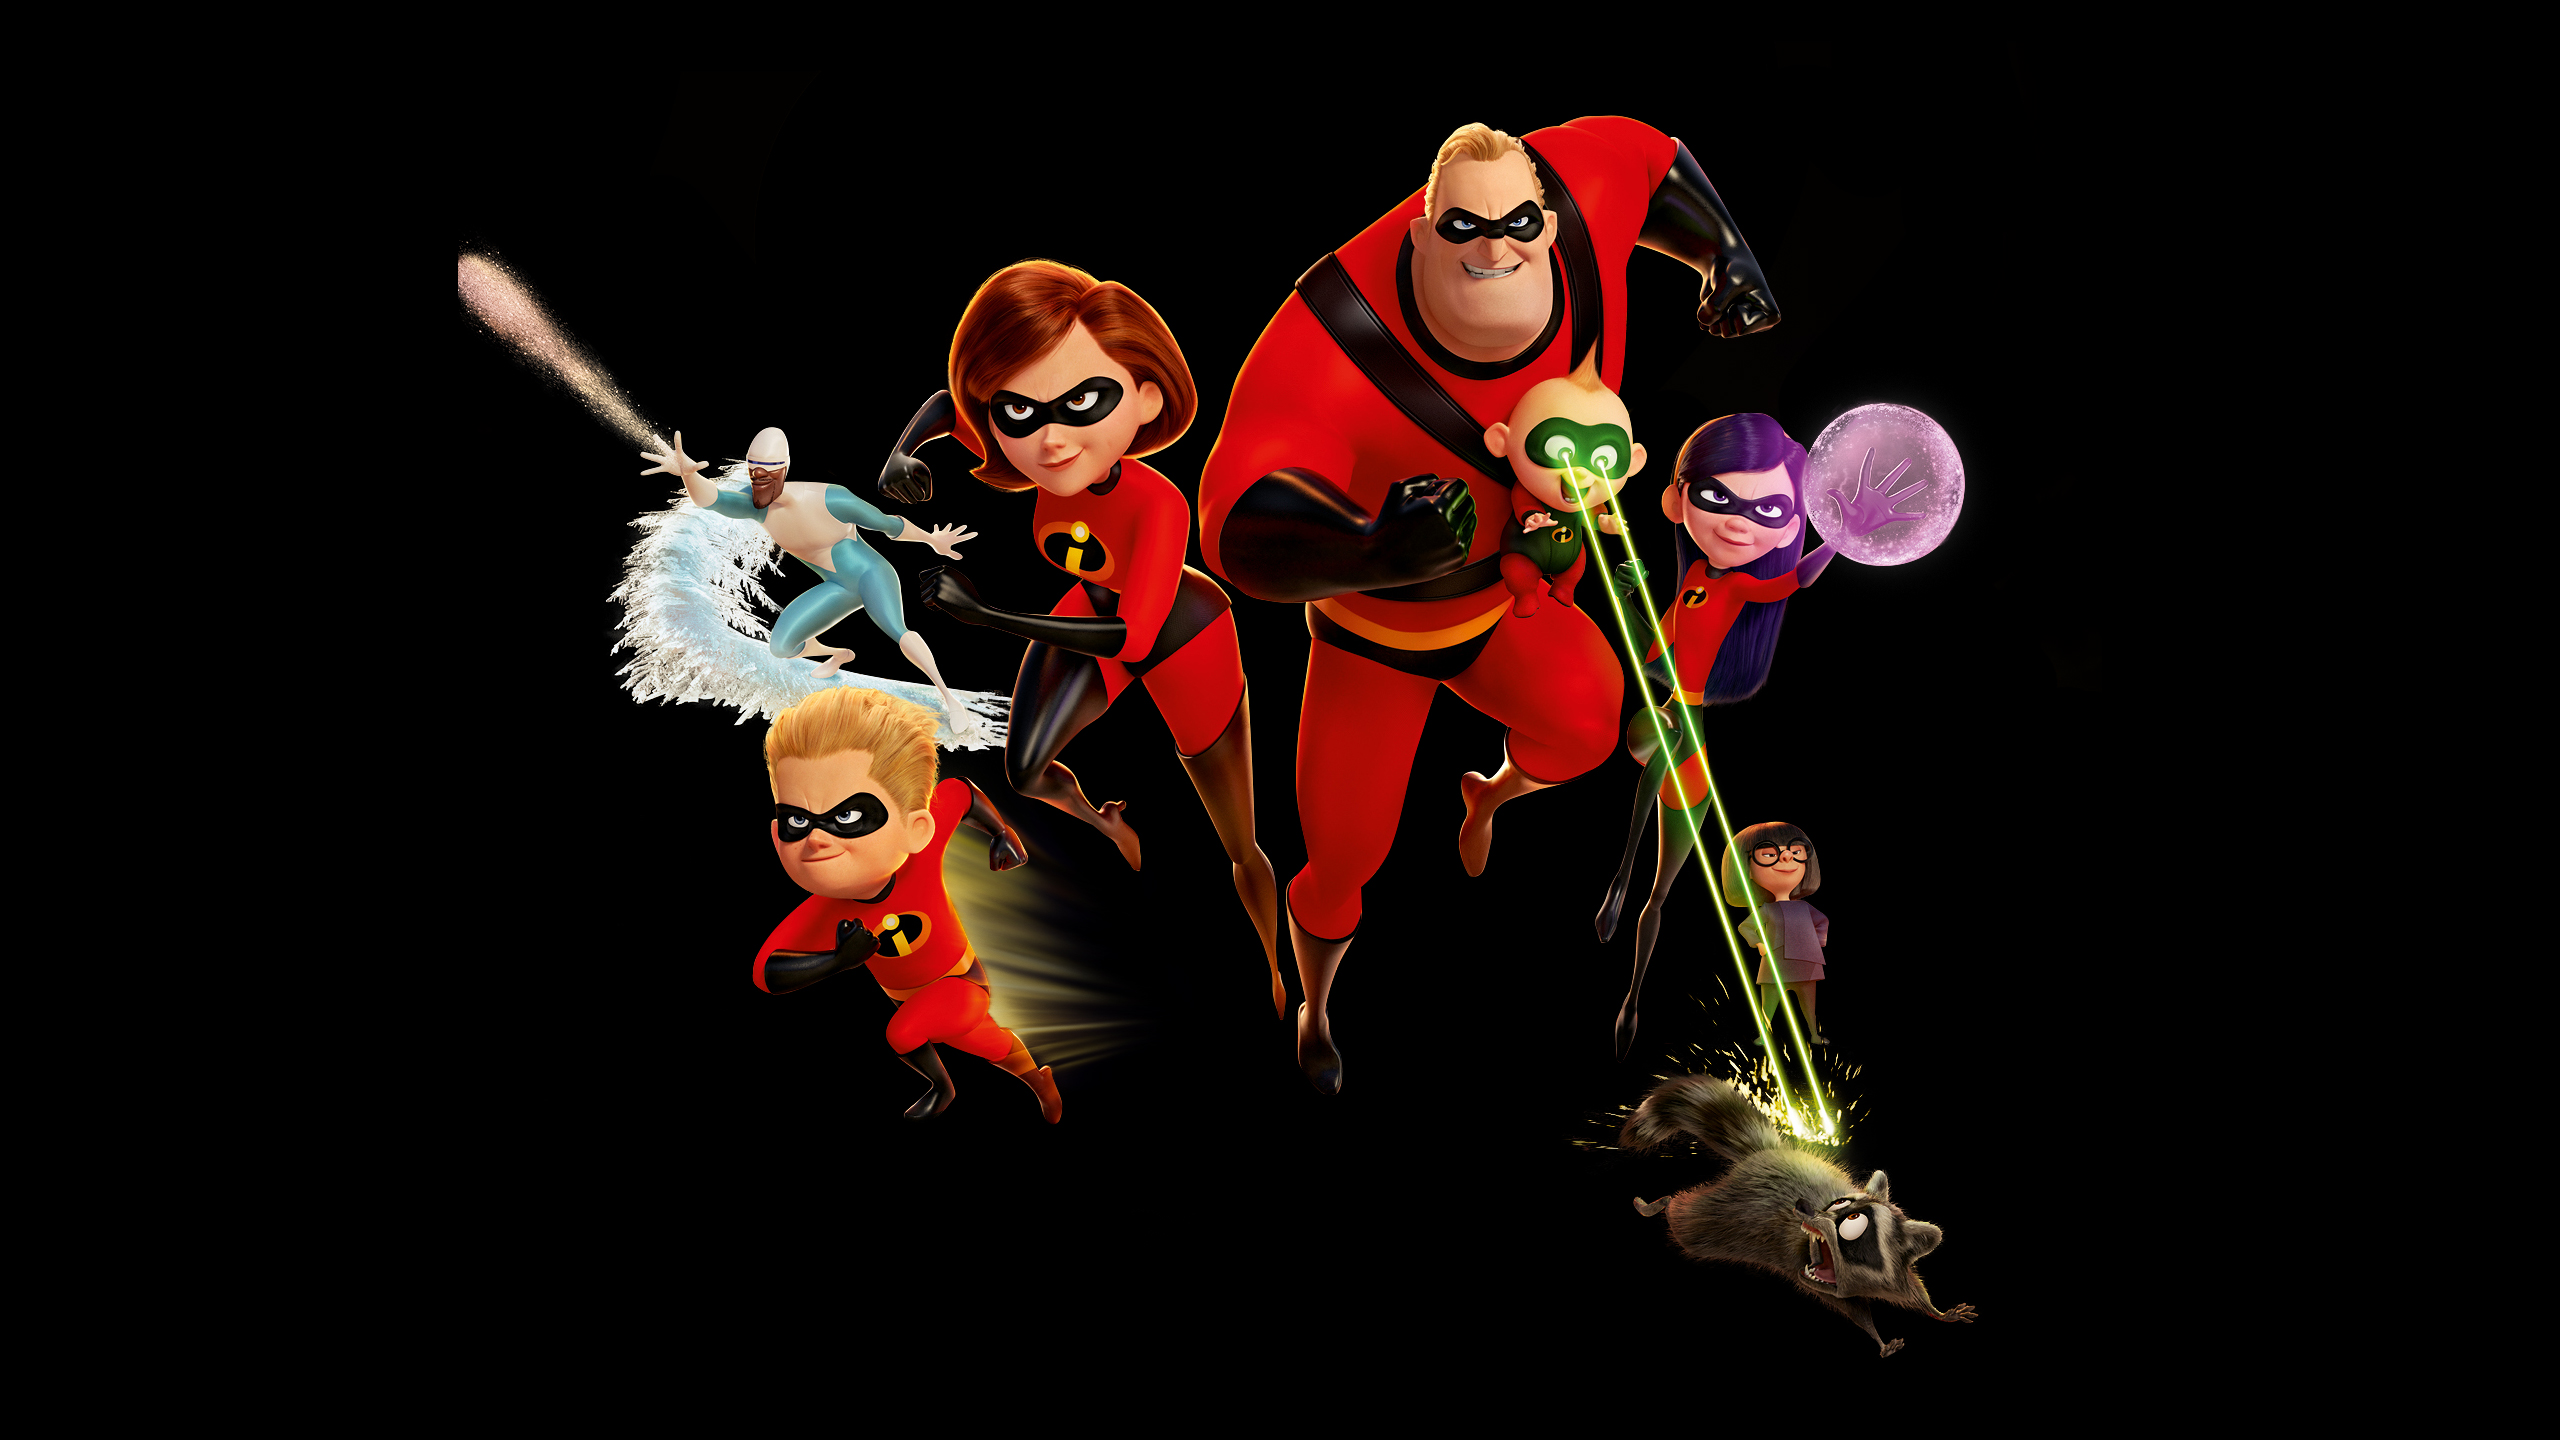 incredibles 2 wallpaper background 64452